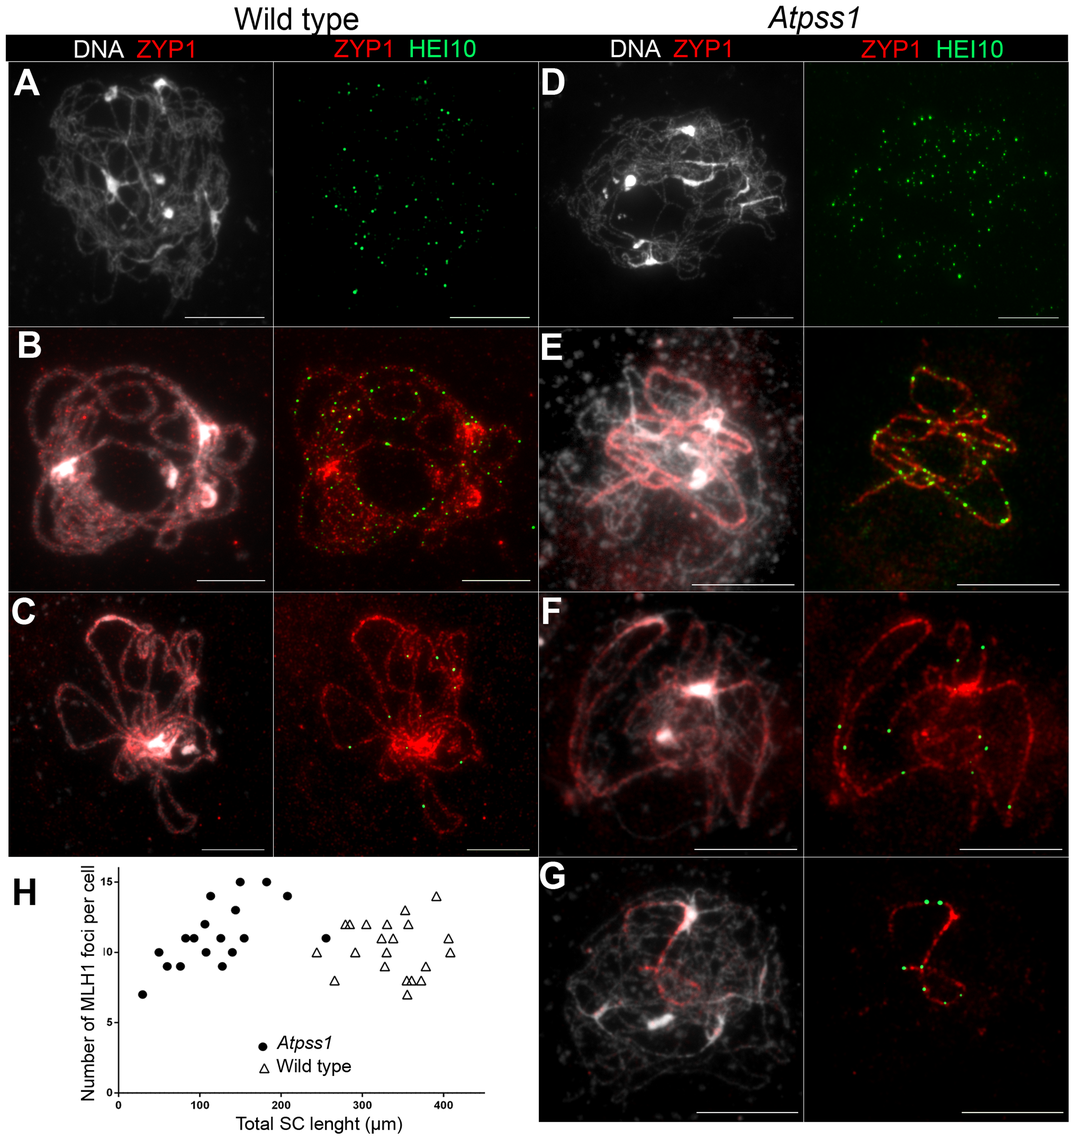 Co-immunolocalization of HEI10 and ZYP1.